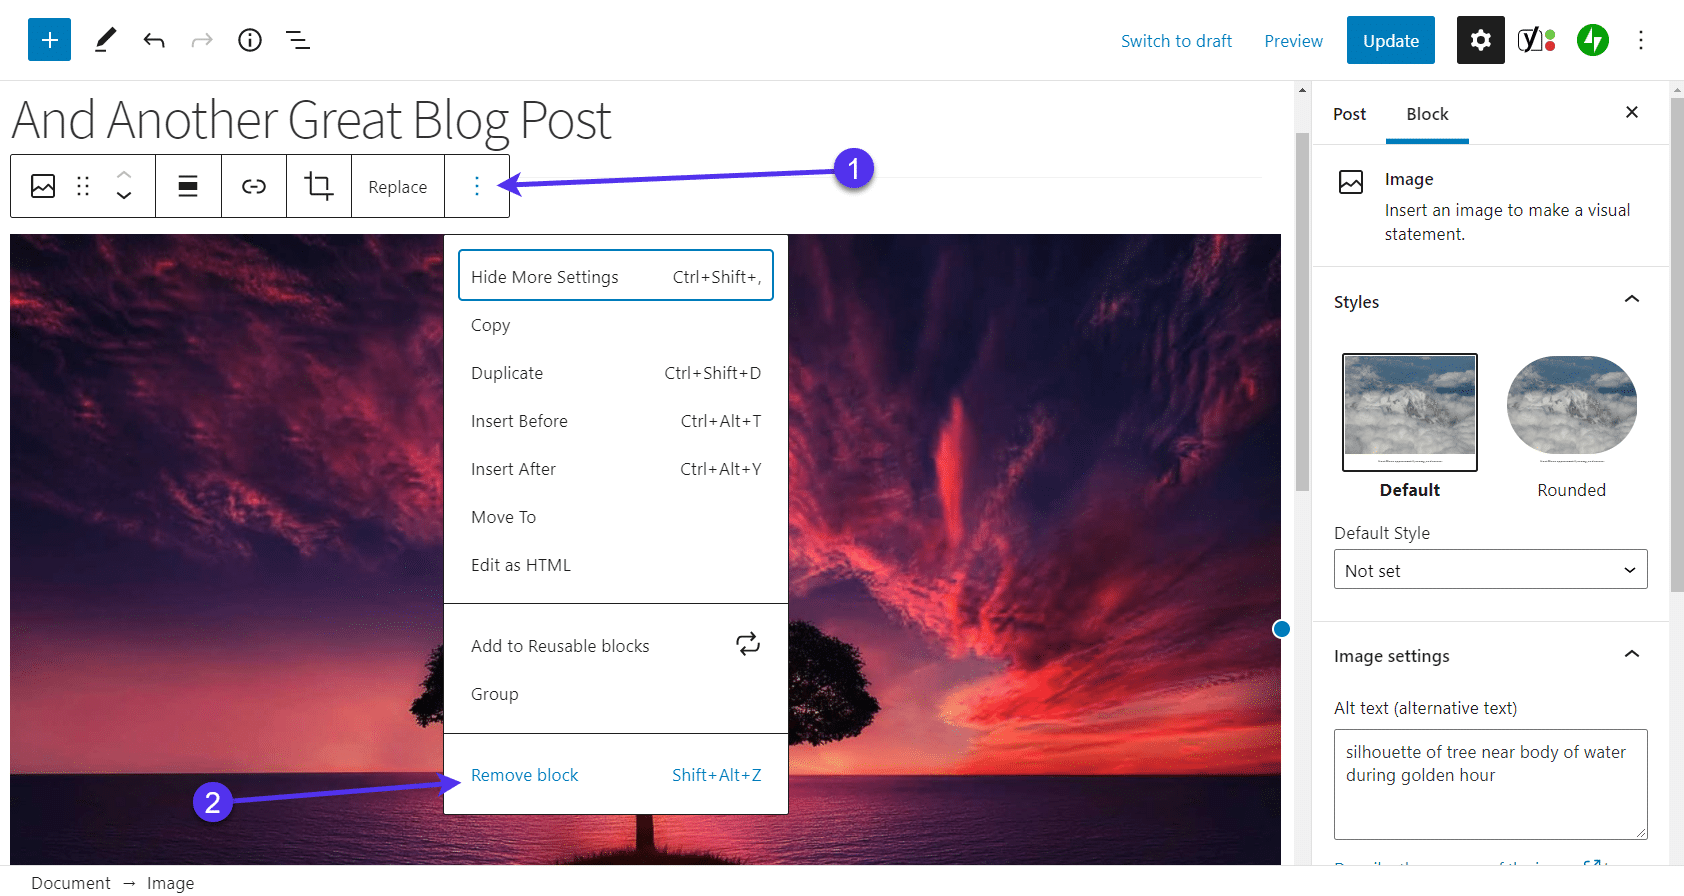 Show more settings by clicking the three-dot icon